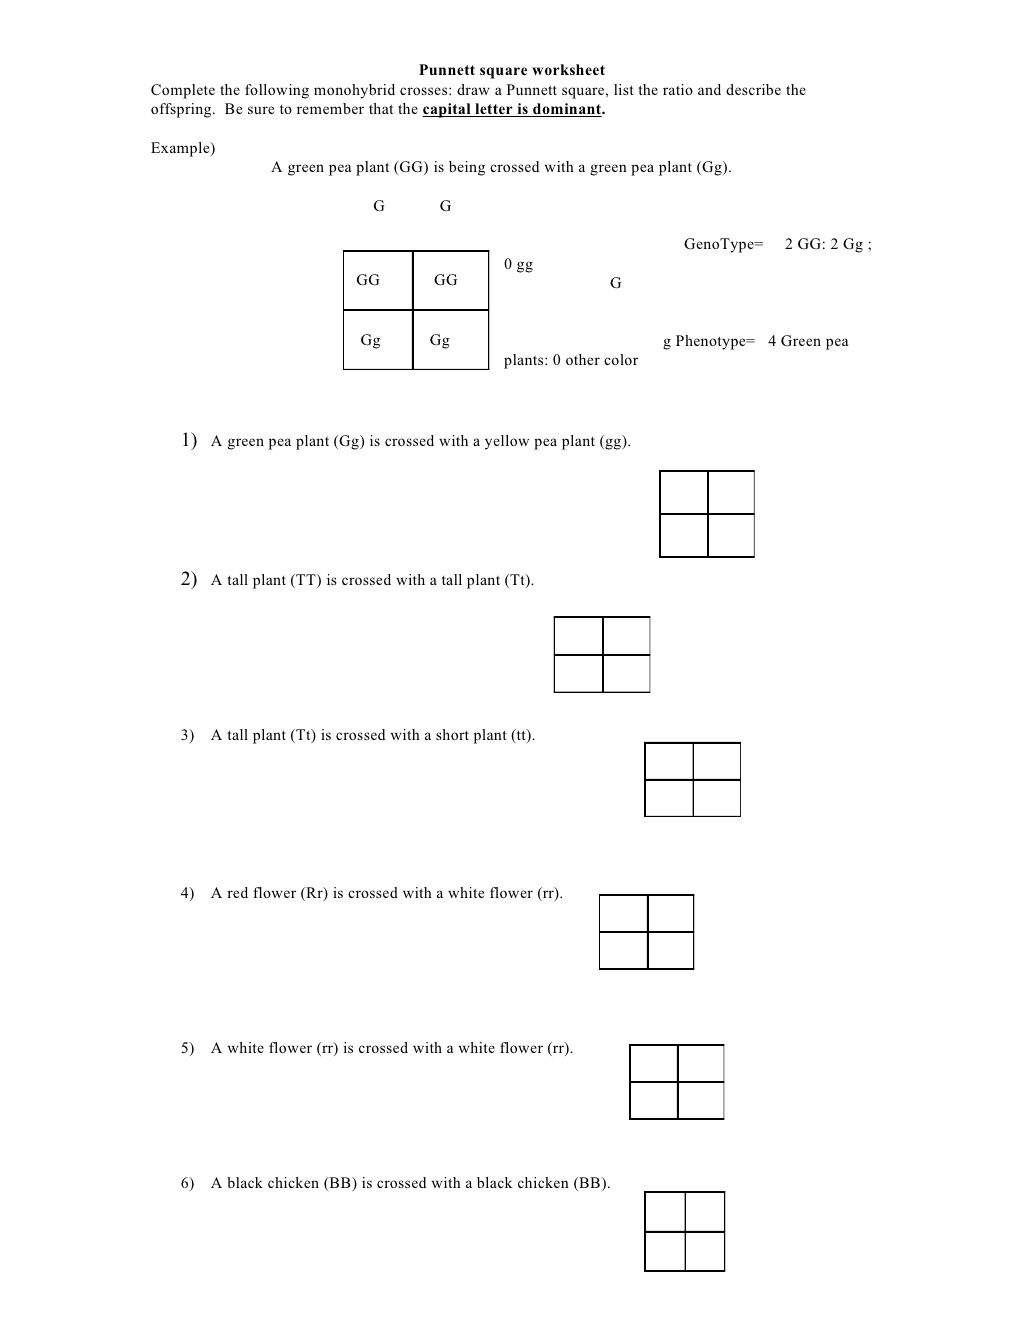 Worksheets Punnett Squares Worksheet punnett square worksheet by kpolson via slideshare beauty tips slideshare